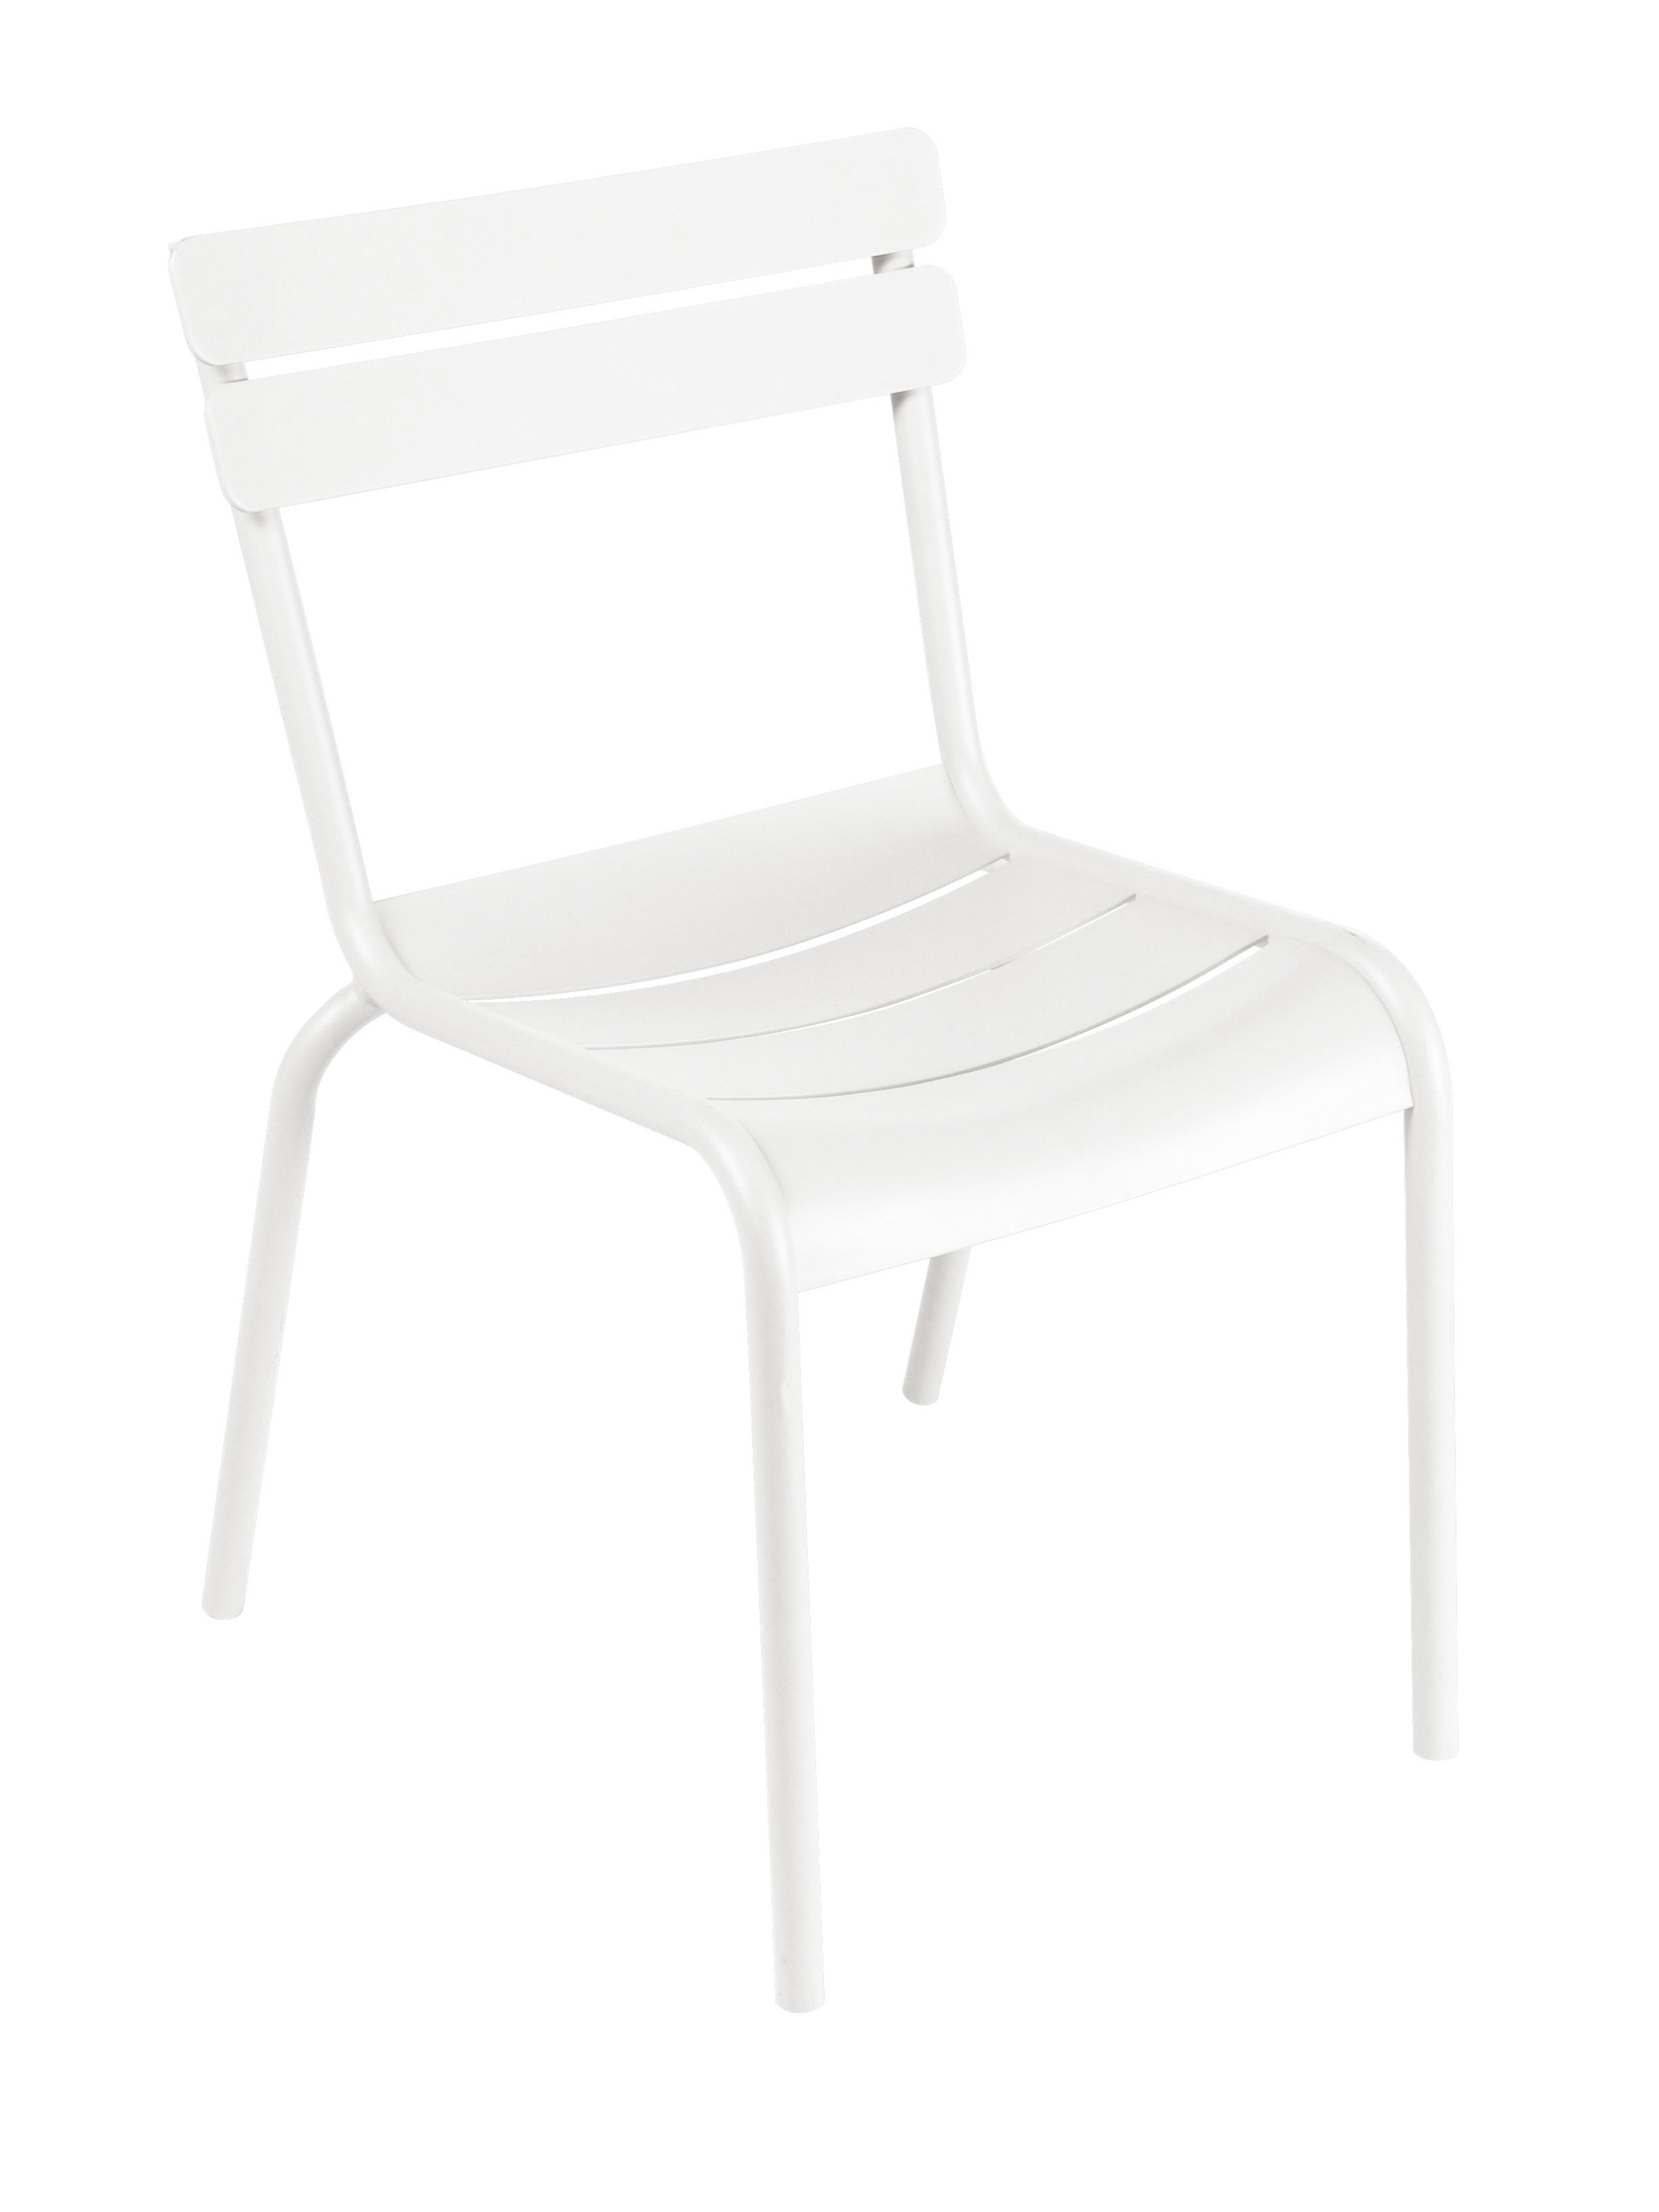 Life Style - Luxembourg Stacking chair - Metal by Fermob - White - Lacquered aluminium